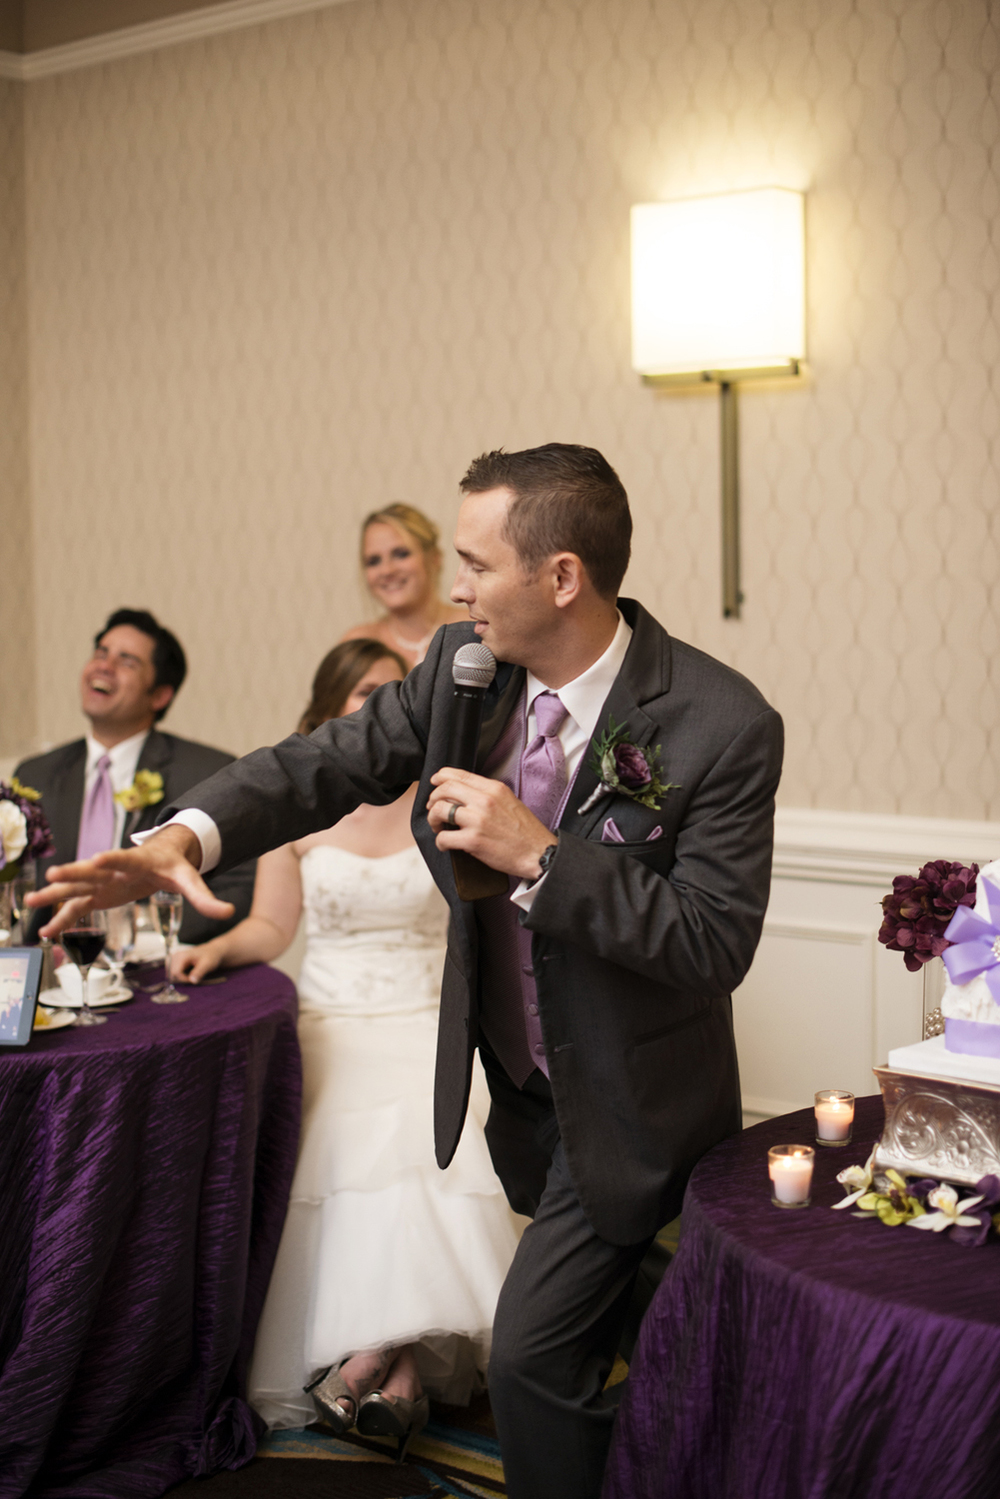 Best man's speech | Fall hotel wedding in Virginia Beach